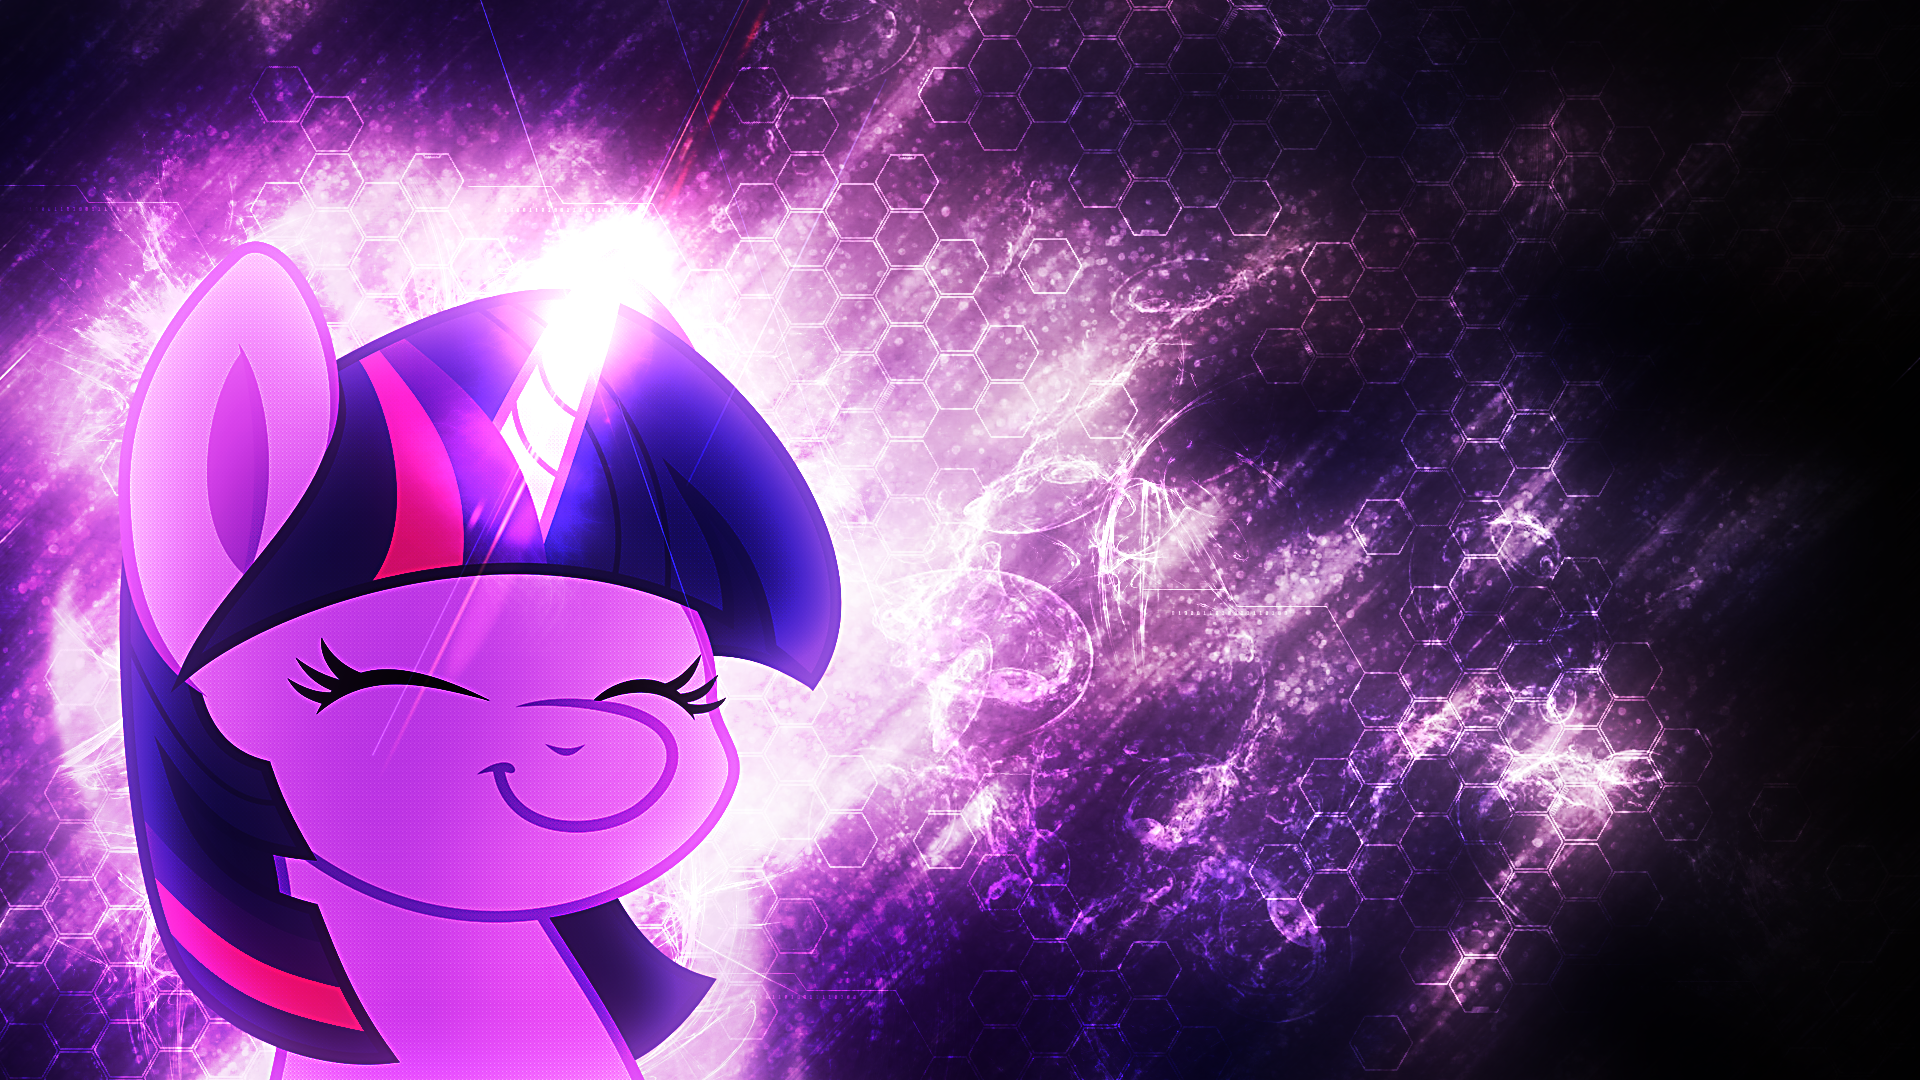 Happy Twilight - Wallpaper by Mamandil and Tzolkine